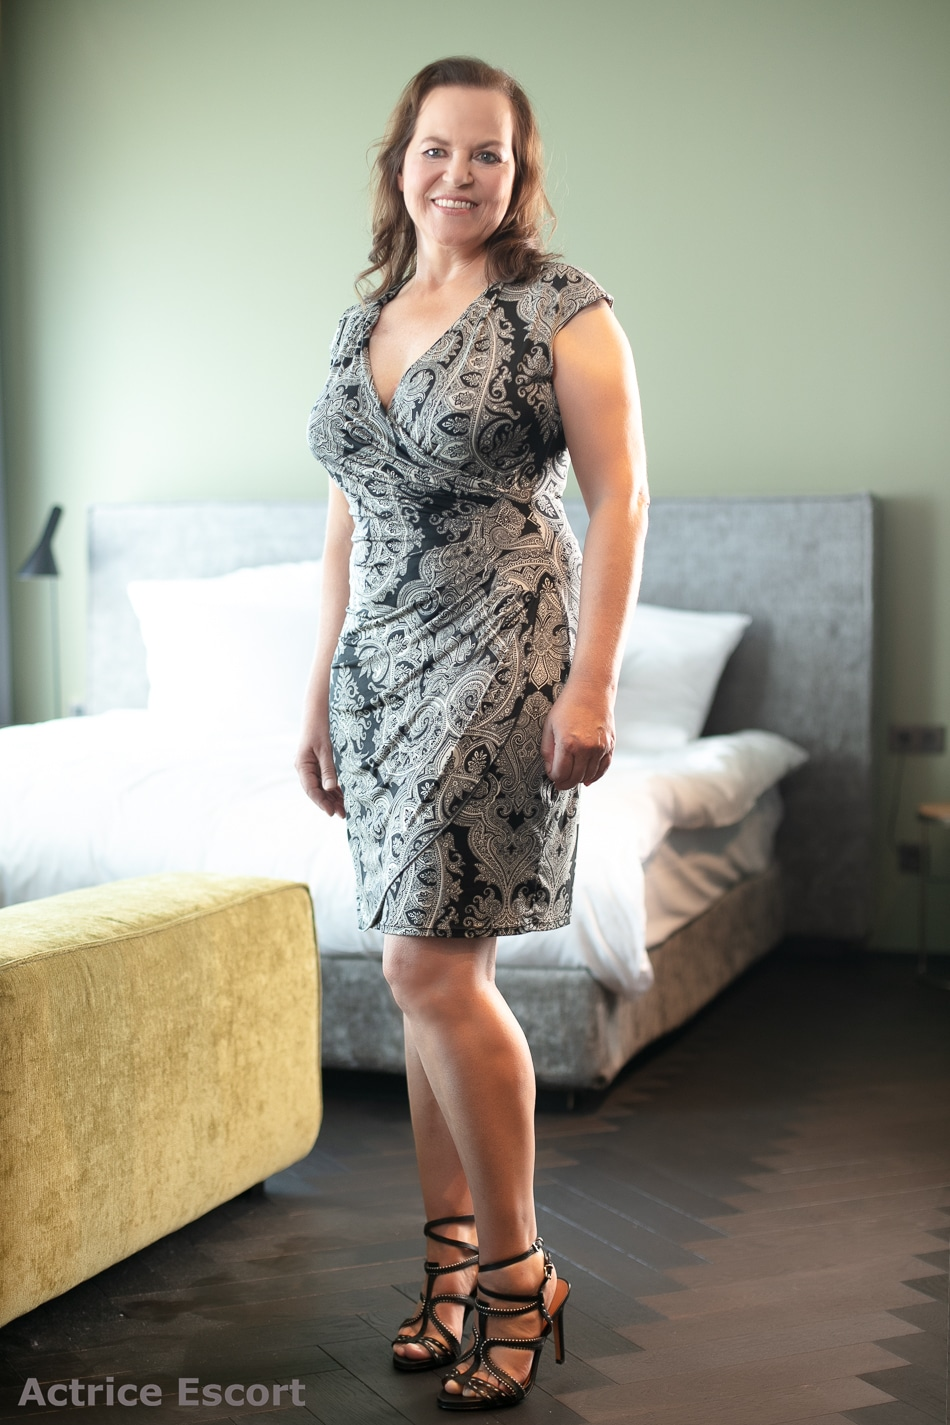 Bettina reife Frau Escortservice Duesseldorf(24)